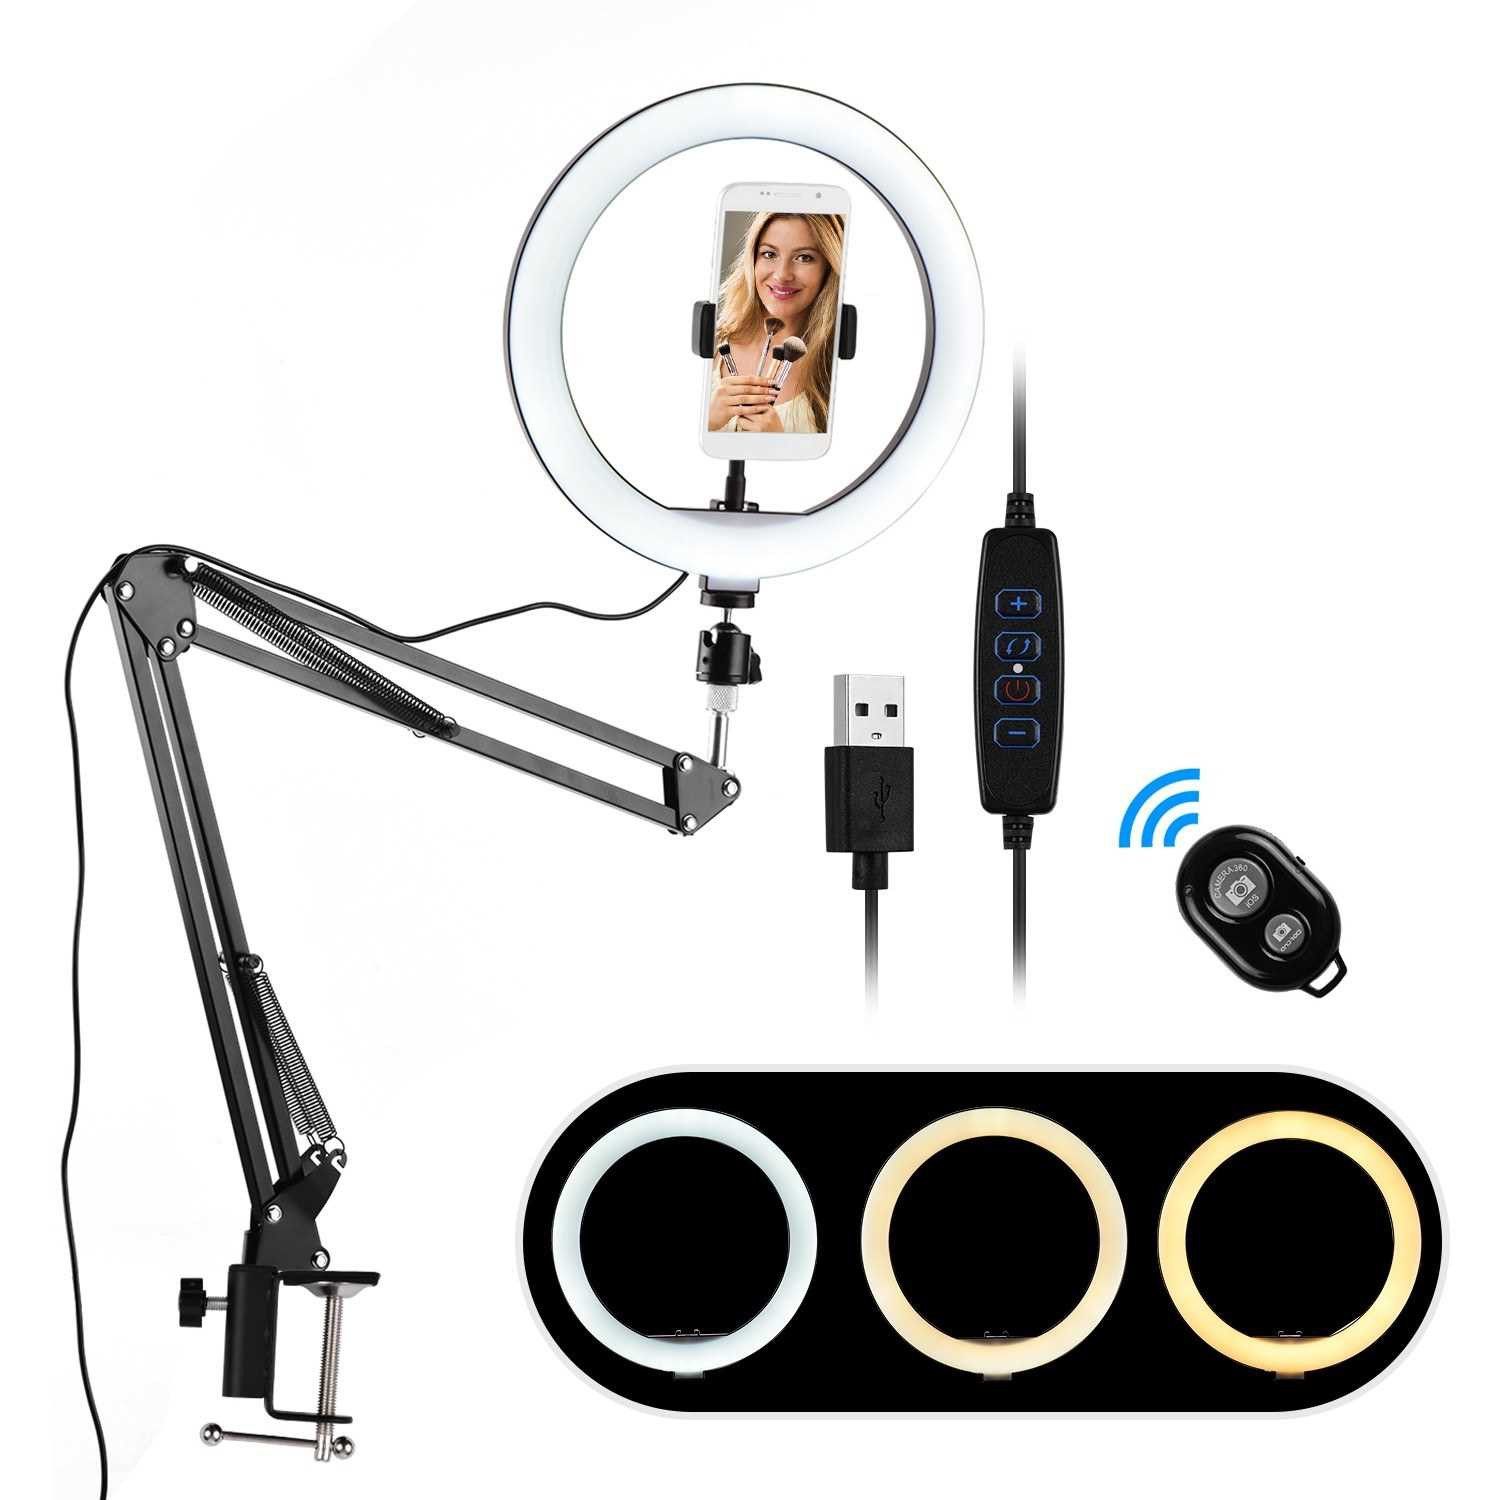 10 Inch Mini LED Ring Light Photography Fill-in Light 3 Lighting Modes Dimmable USB Powered with Flexible Clip-on Light